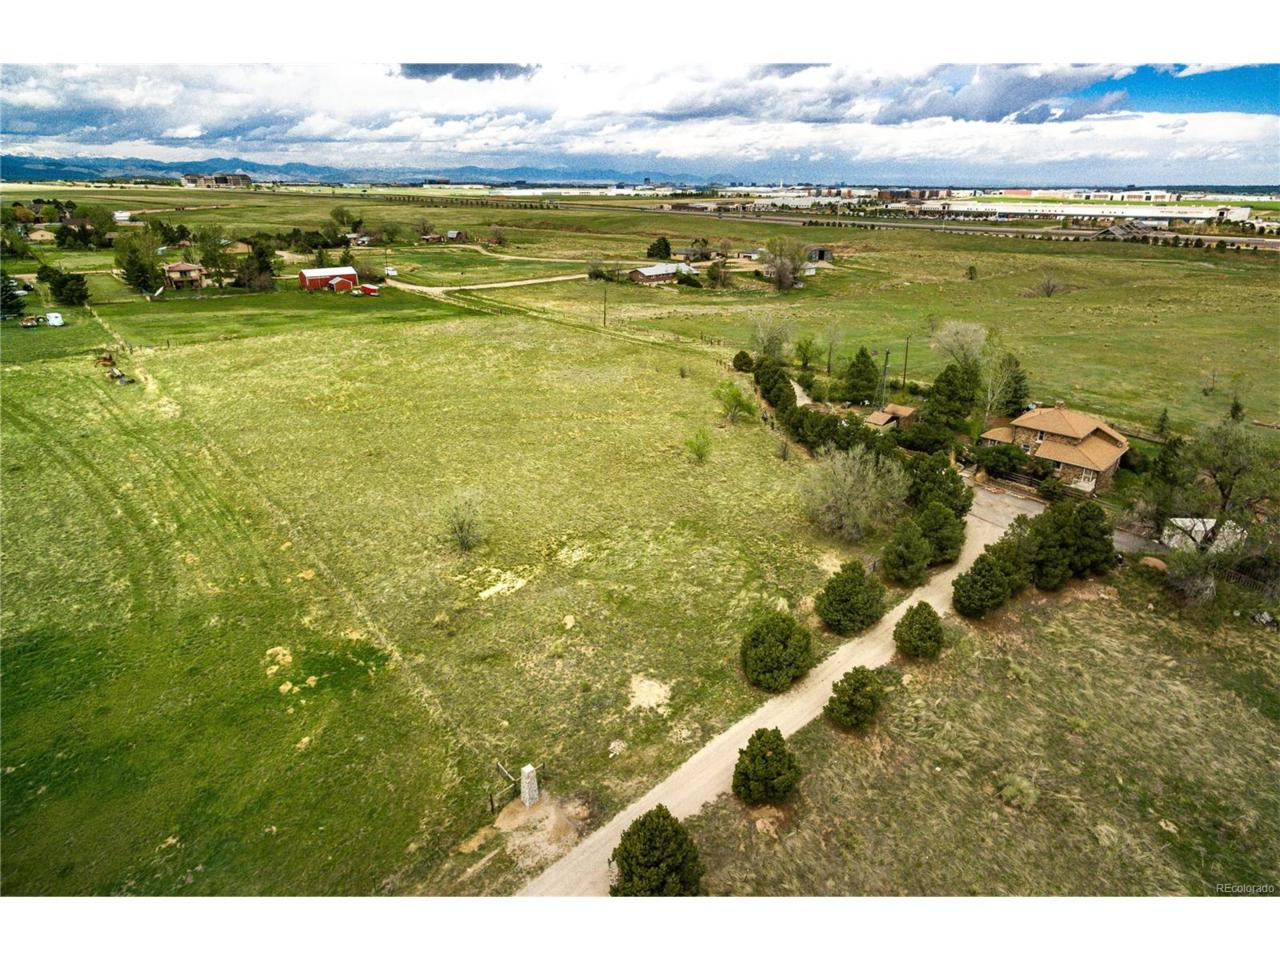 12955 N 4th Street, Parker, CO 80134 (MLS #3550733) :: 8z Real Estate